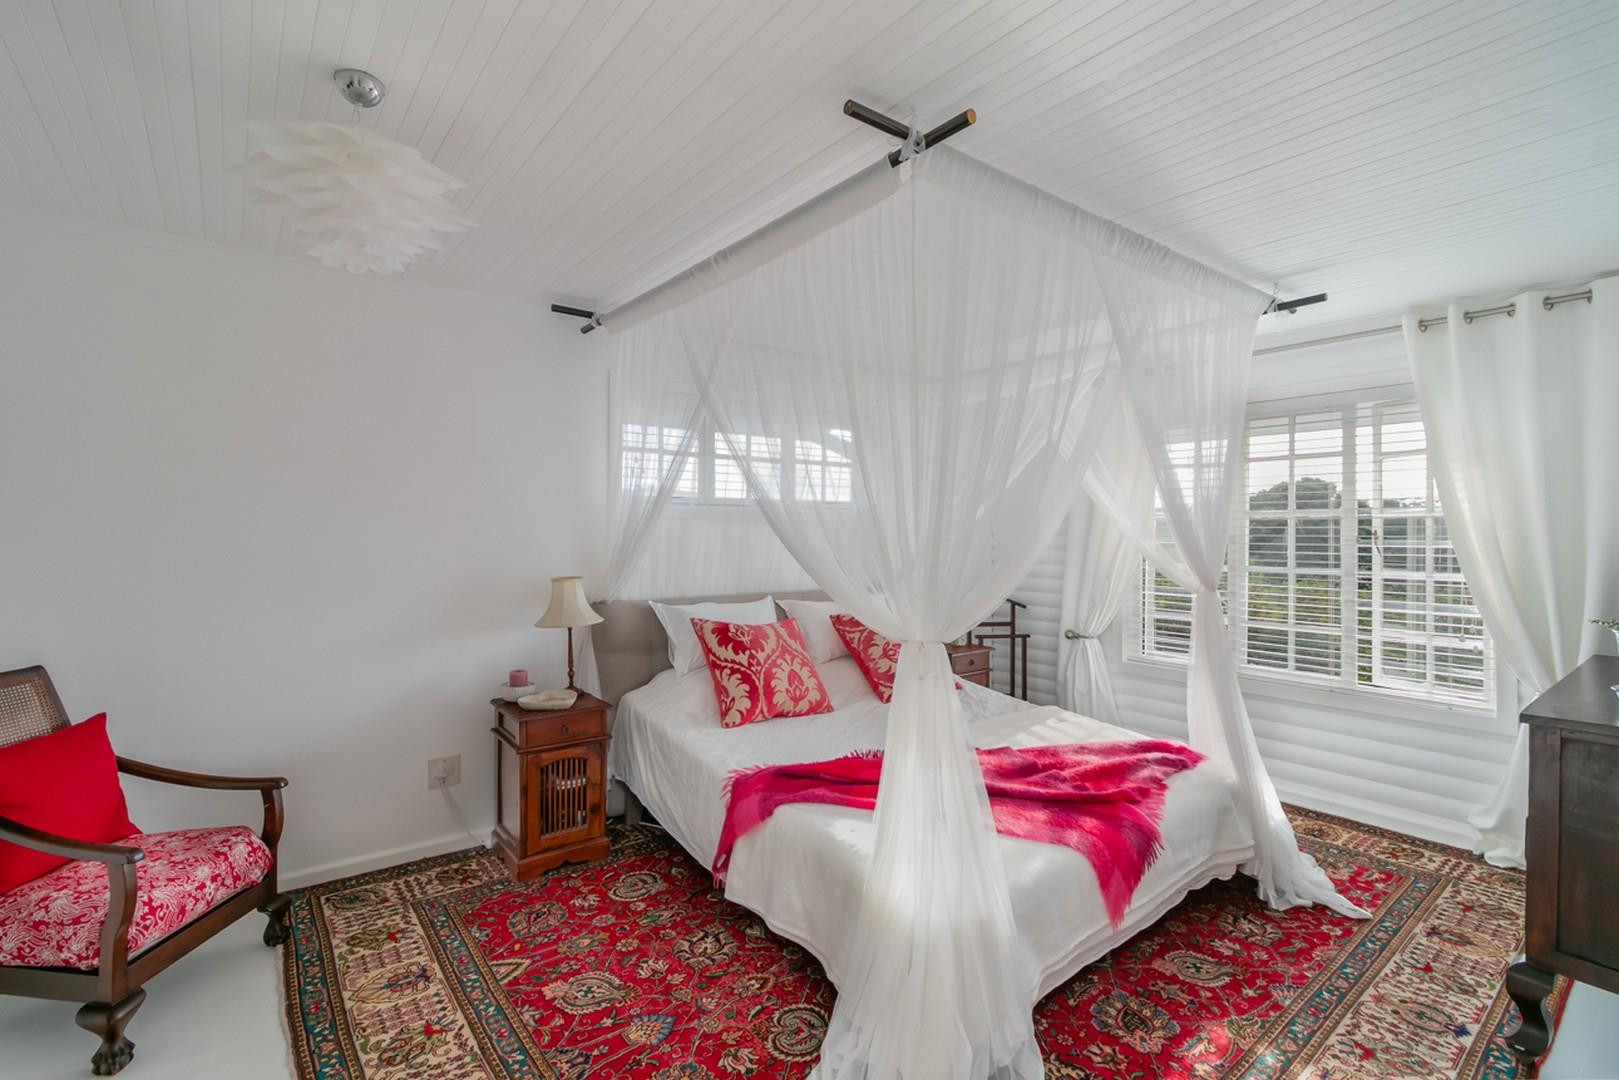 3 Bedroom House For Sale in Hunters Home